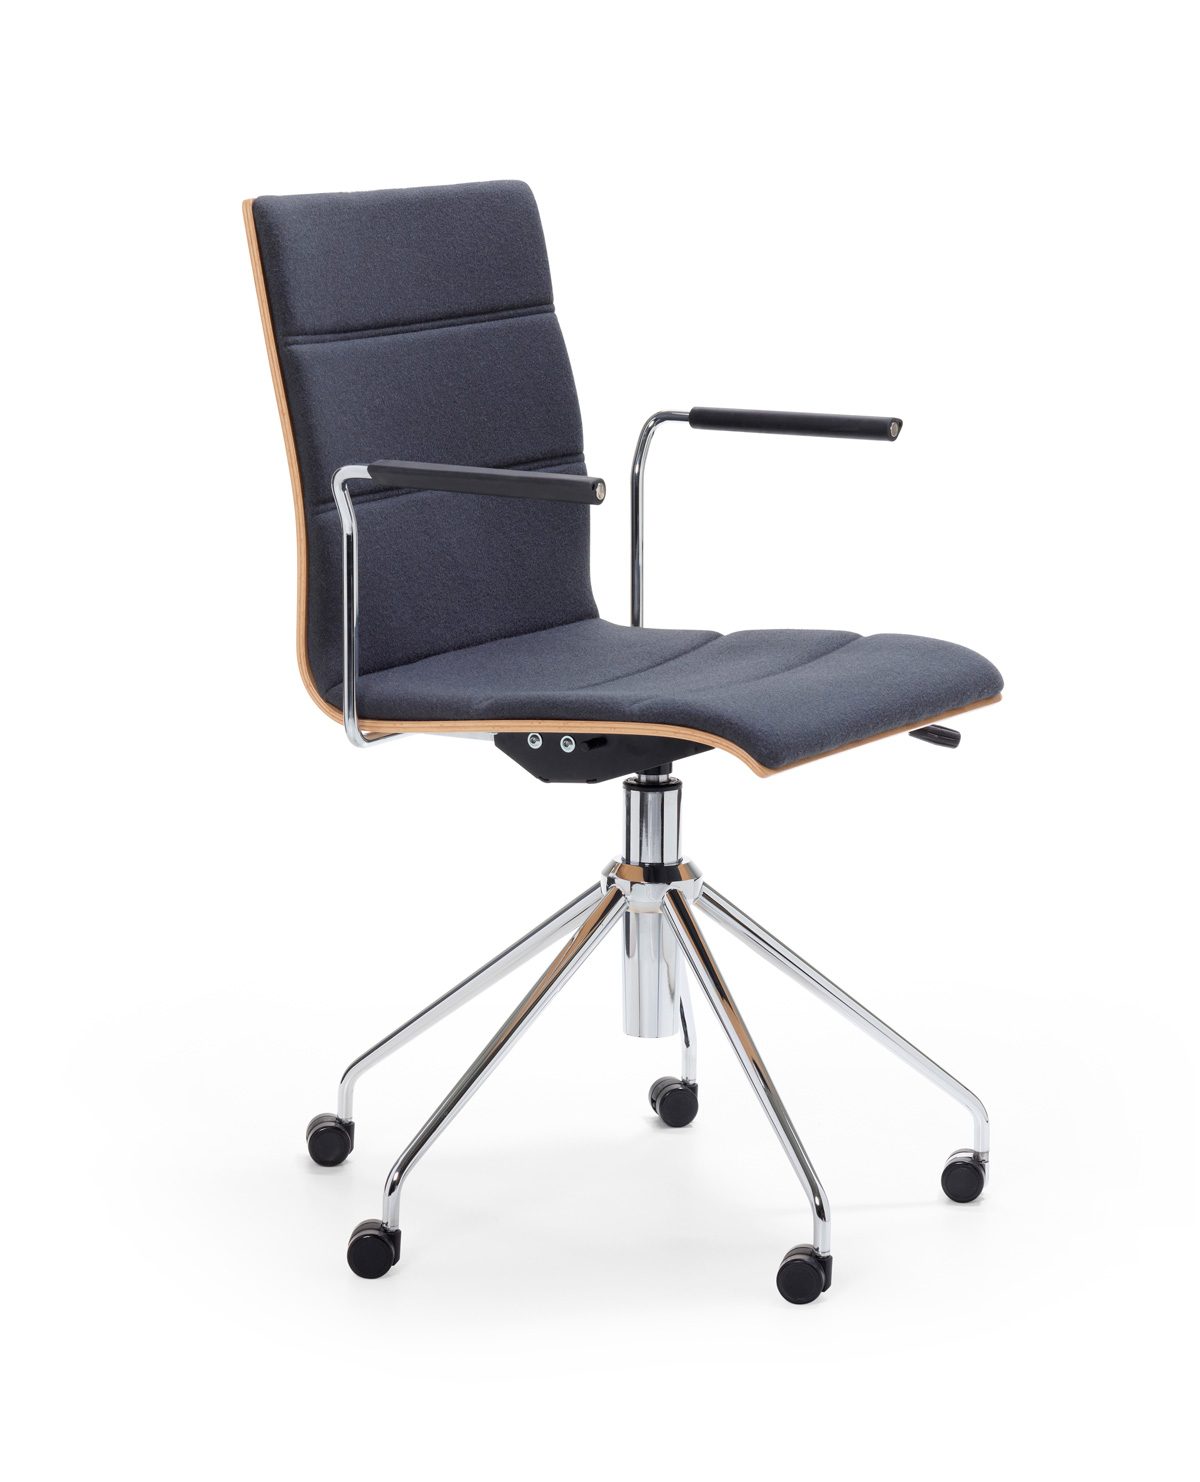 X-Ray Spin office chair images